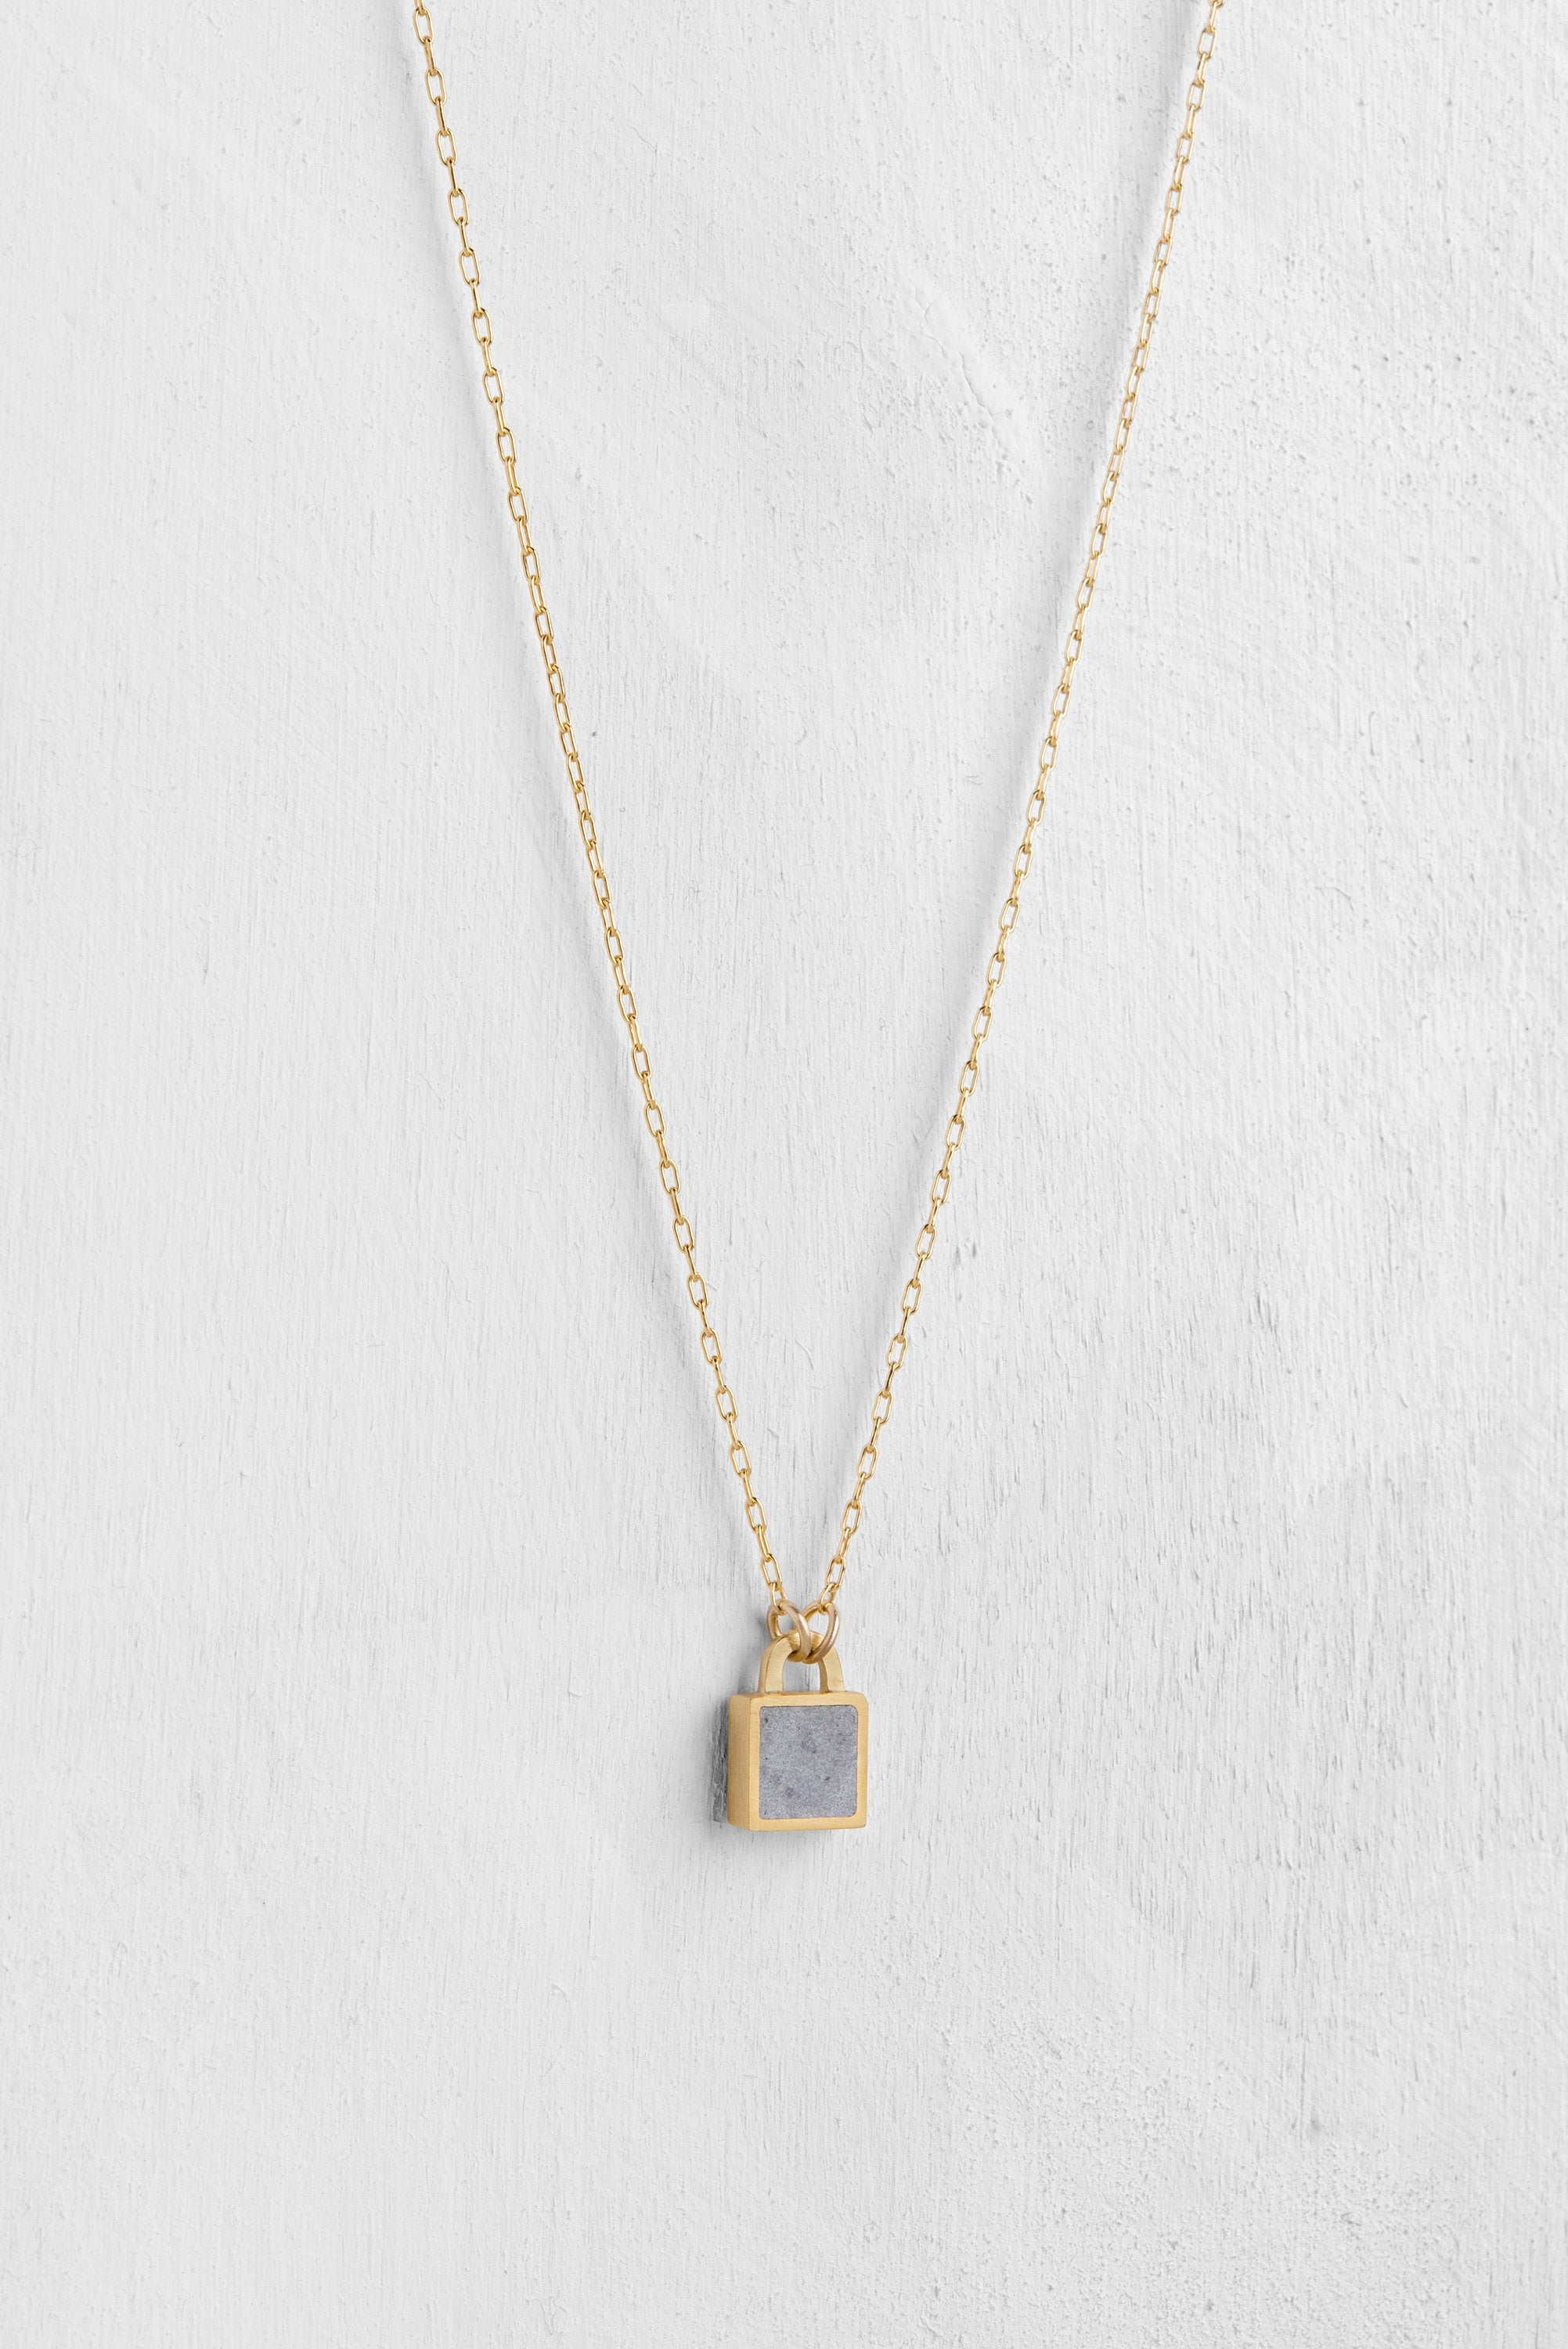 Concrete lock pendant, Concrete jewelry, Sq lock Necklace, Tiny Gold Necklace, Geometric Everyday necklace, Minimalist pendent, Gift for her - hs